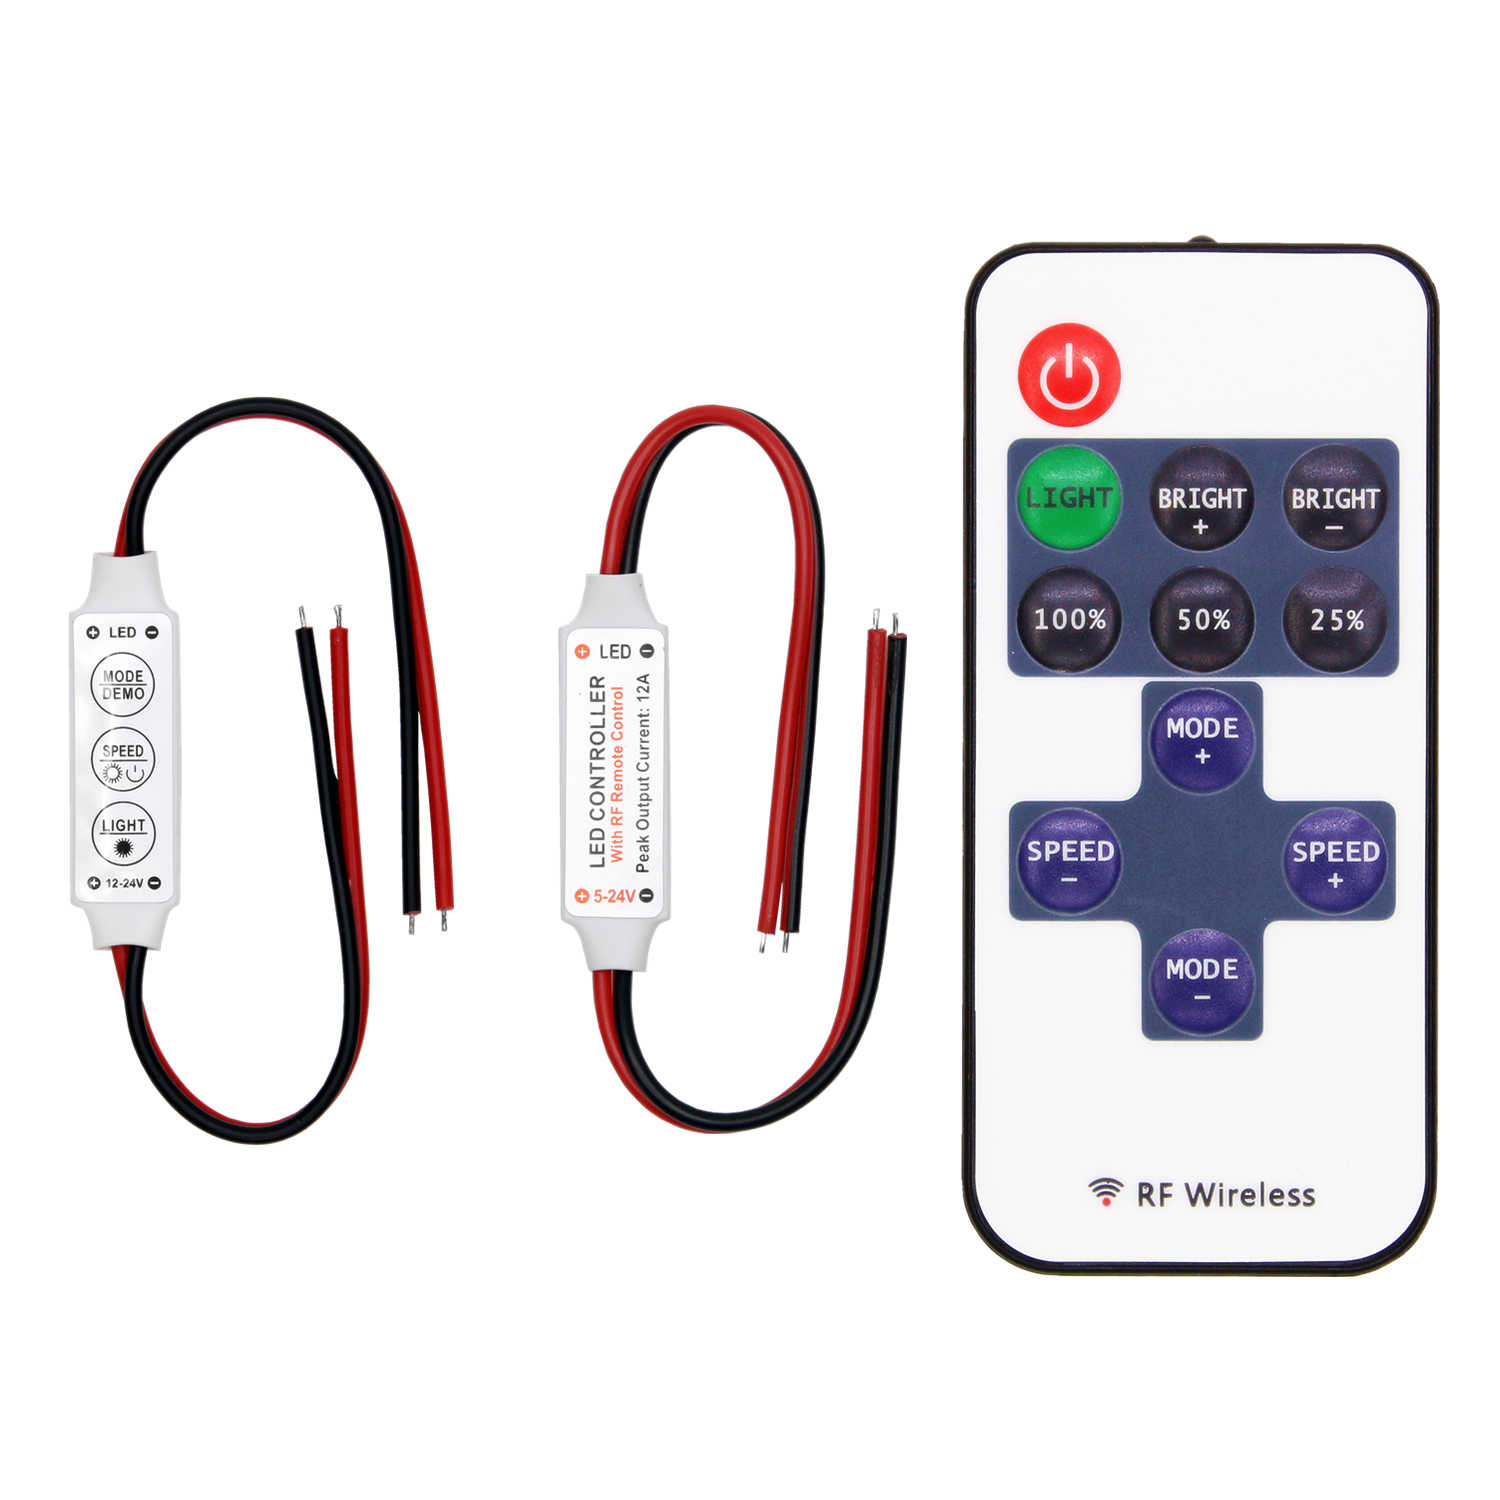 LED Strip Controller Mini Dimmer RF Remote DC 5V 12V 24V Controller untuk 5050 2835 Strip satu Warna